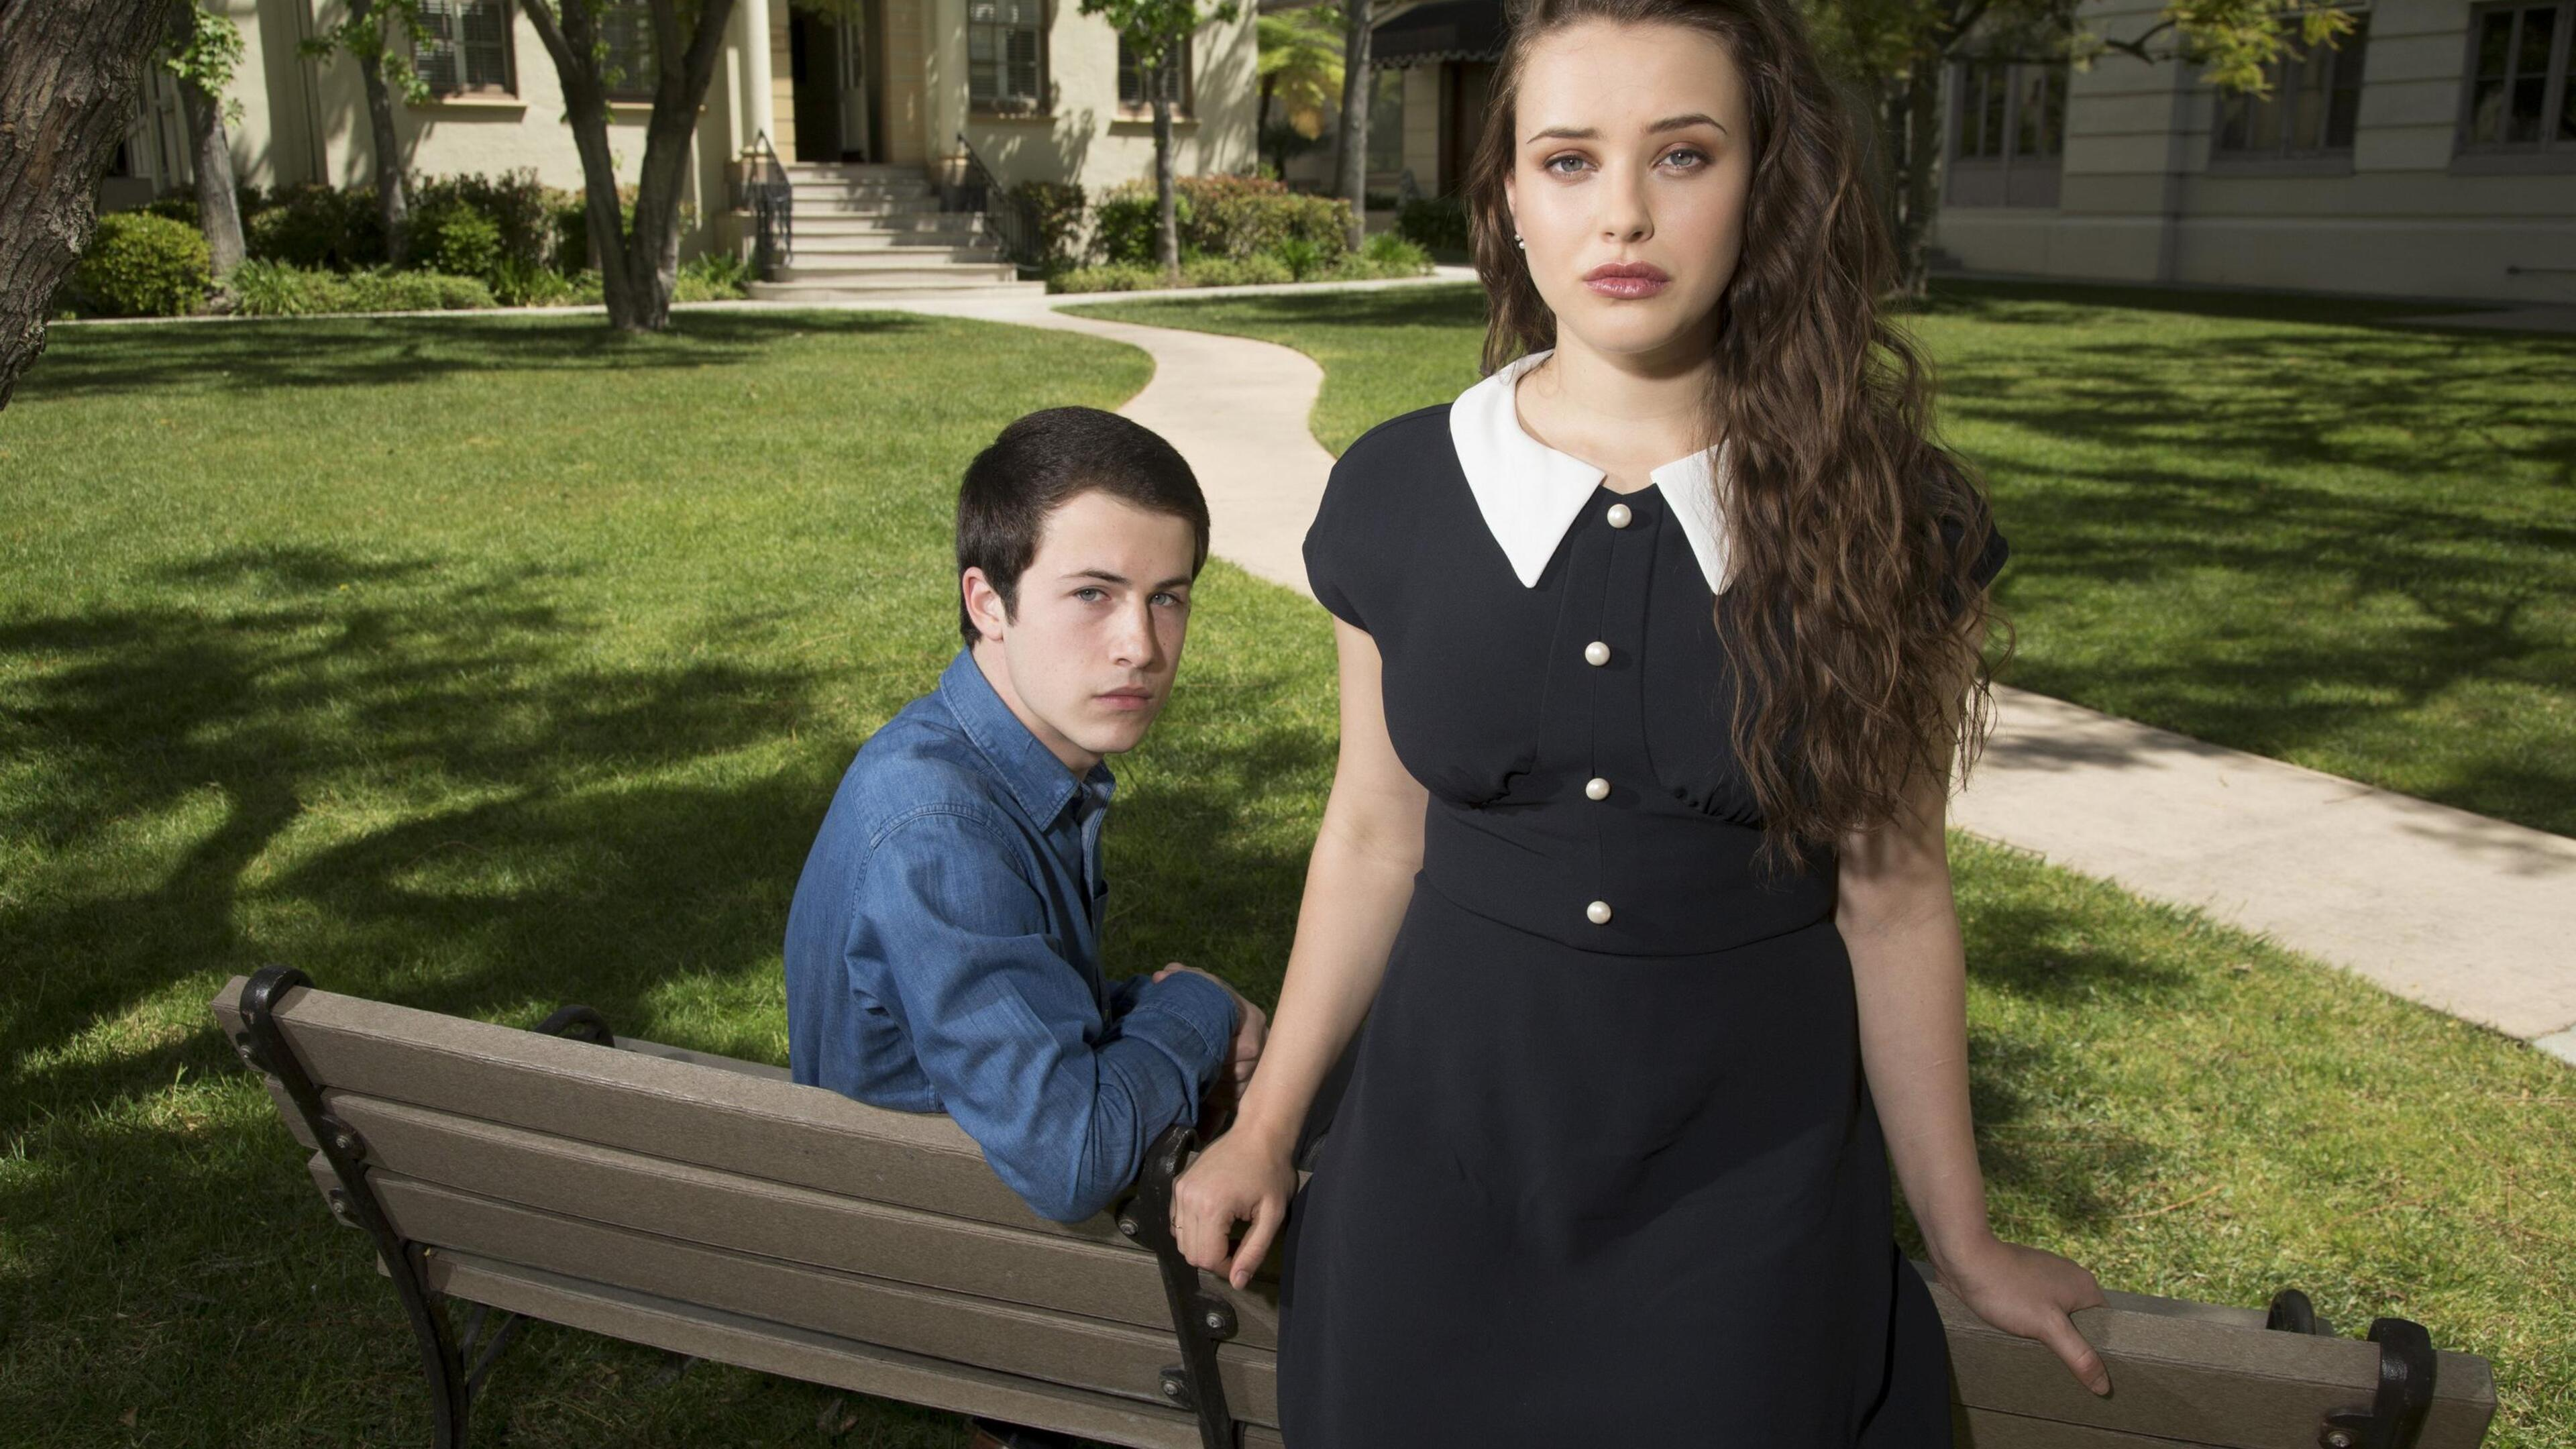 clay-and-hannah-13-reasons-why-hd.jpg